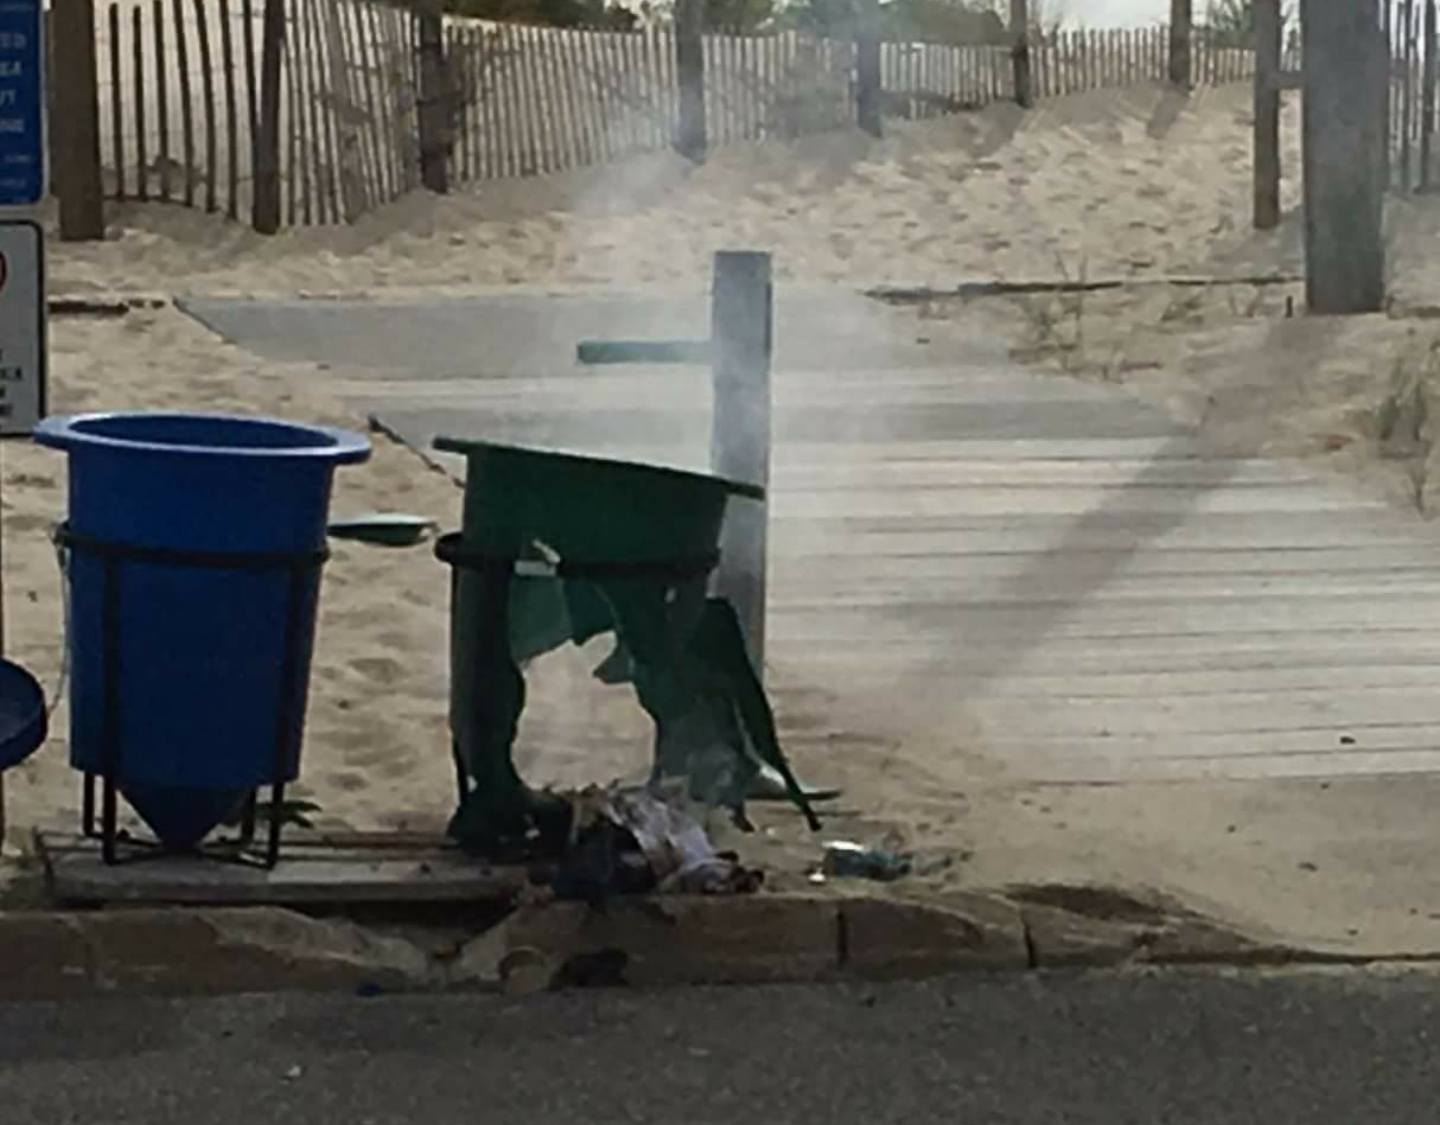 Damage to a garbage can after a bomb exploded in Seaside Park, Sept. 17, 2016. (Photo: Bob Vosseller)